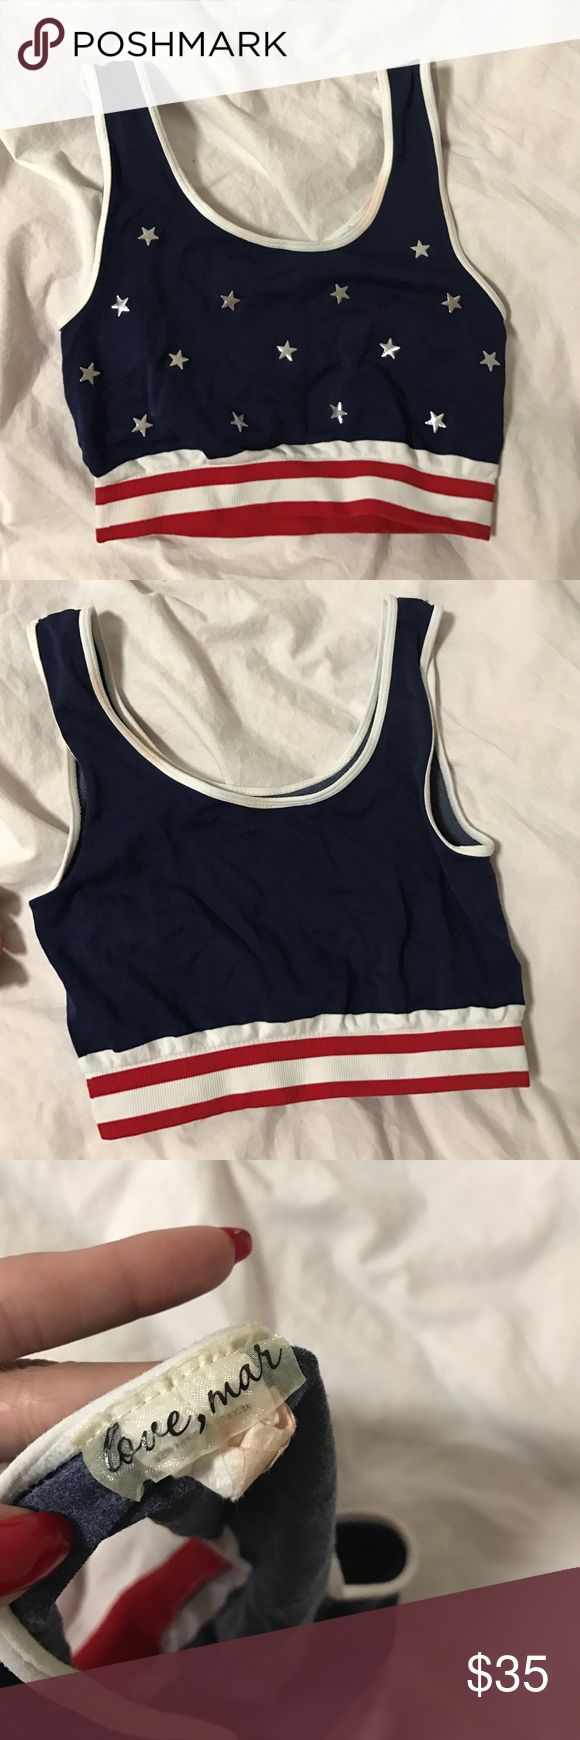 LF American flag crop top 🇺🇸 LF flag crop top! Super flattering, worn once for a 4/7 party. LF Tops Crop Tops